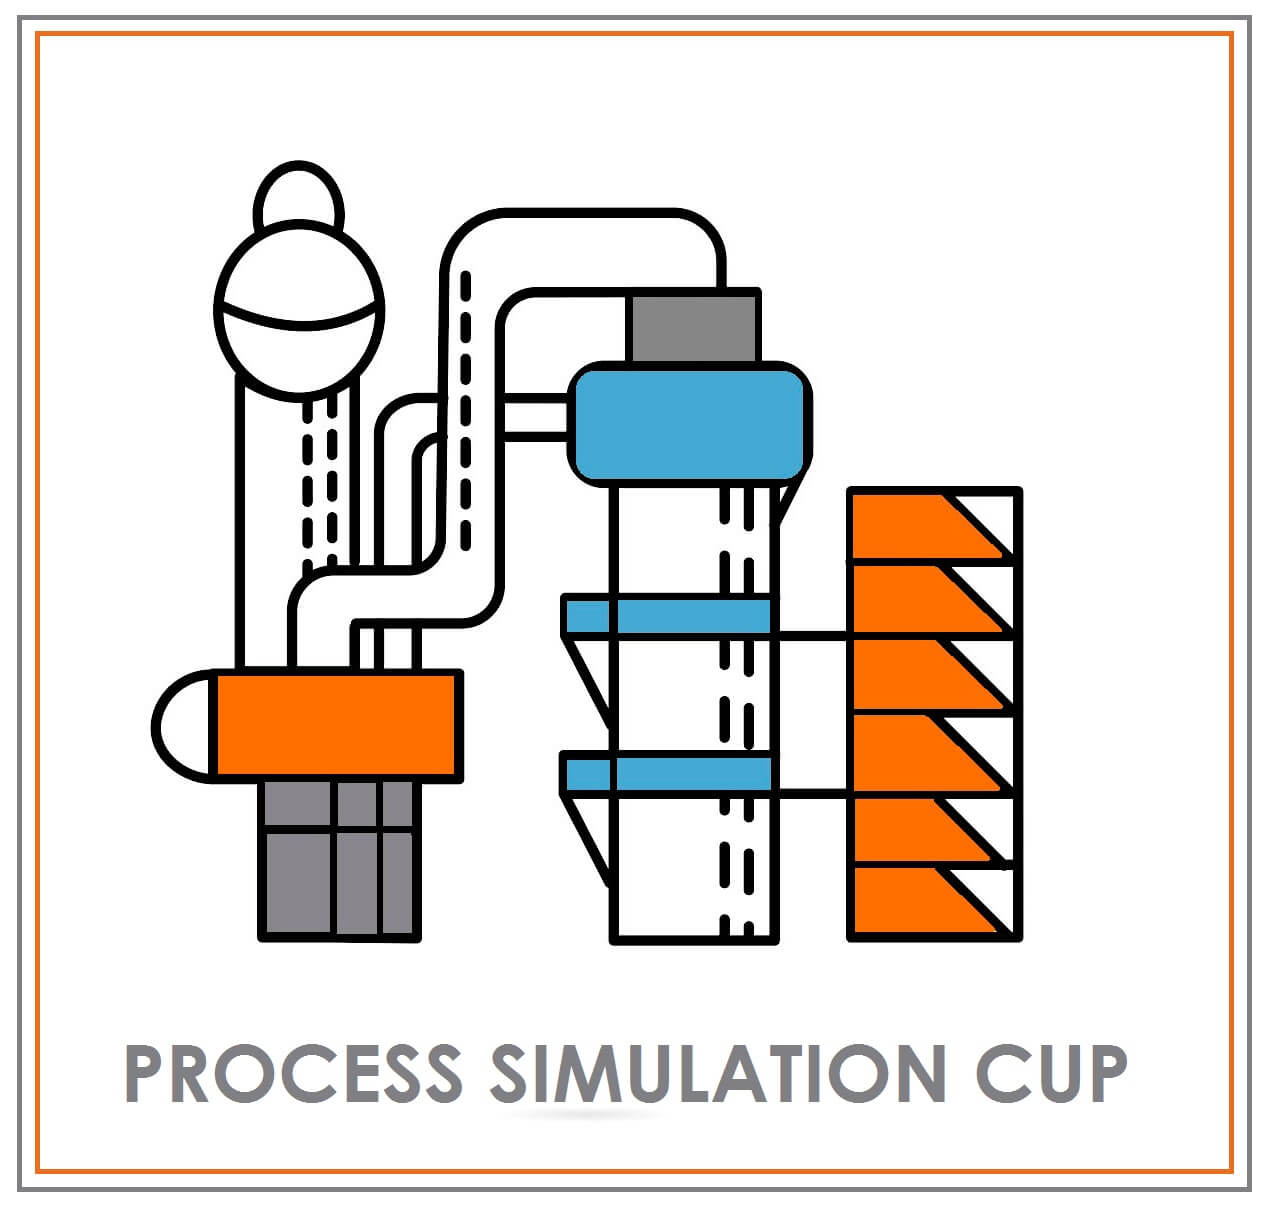 Process Simulation Cup